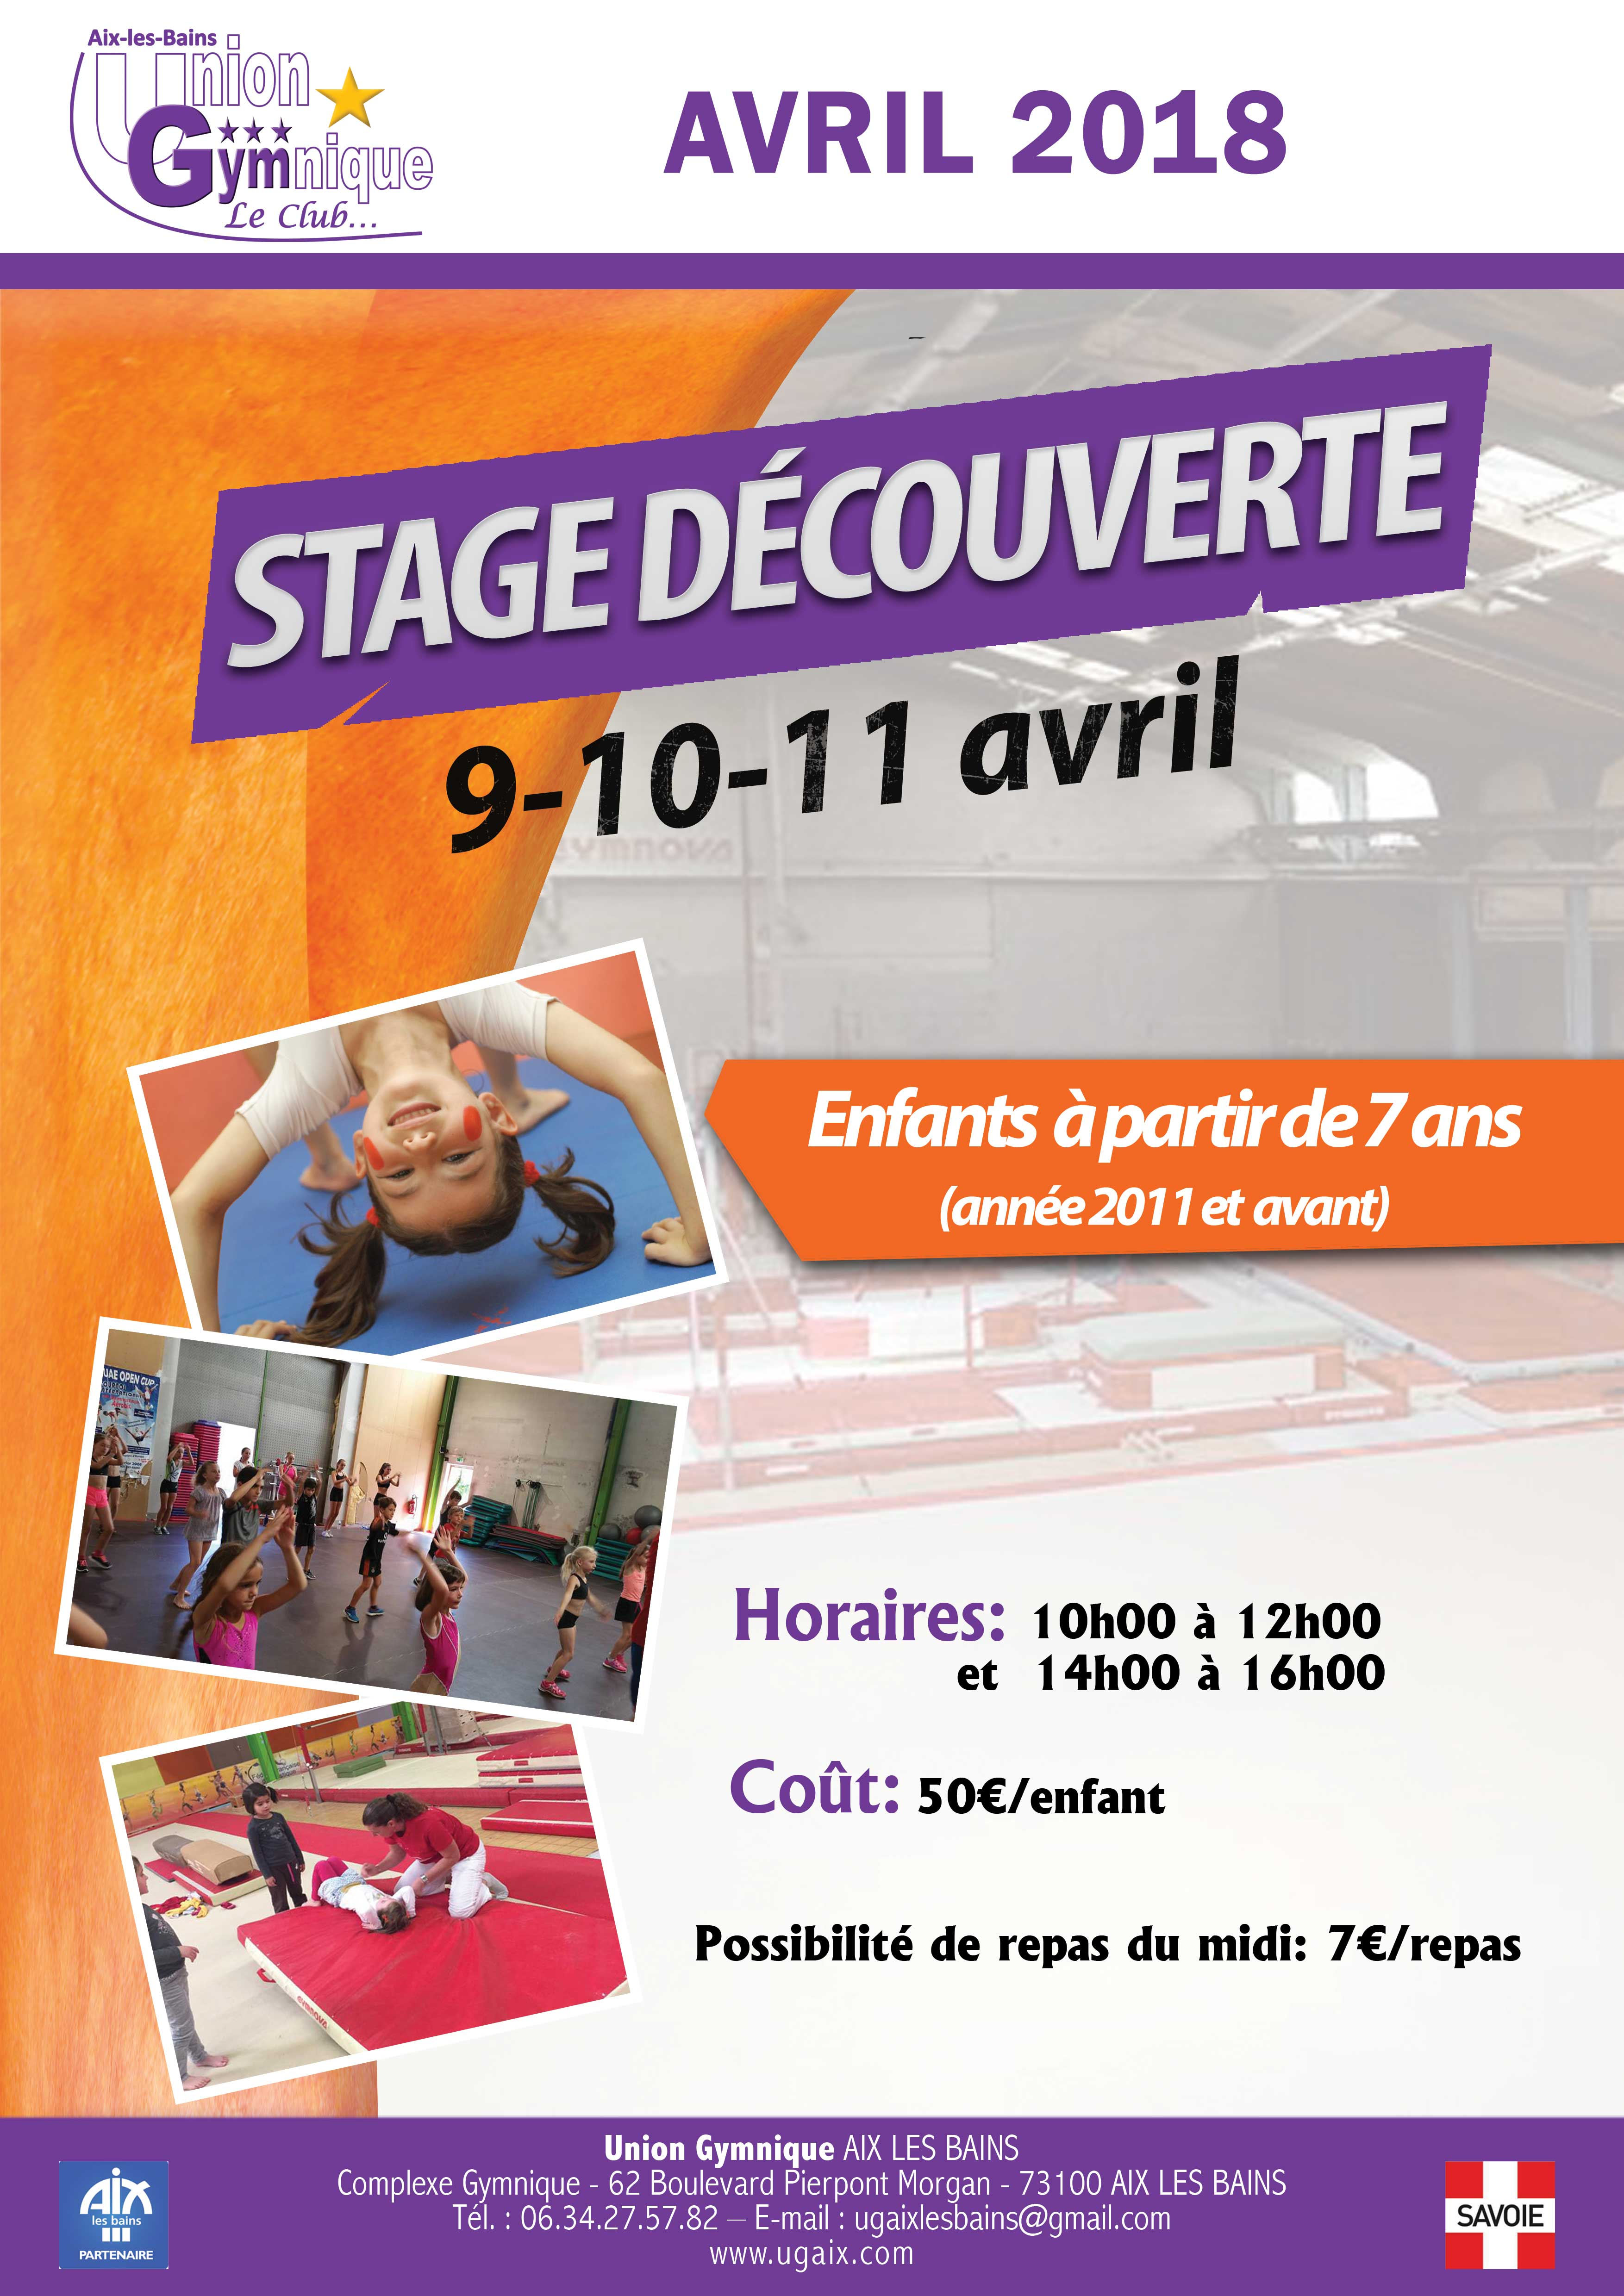 STAGE DECOUVERTE